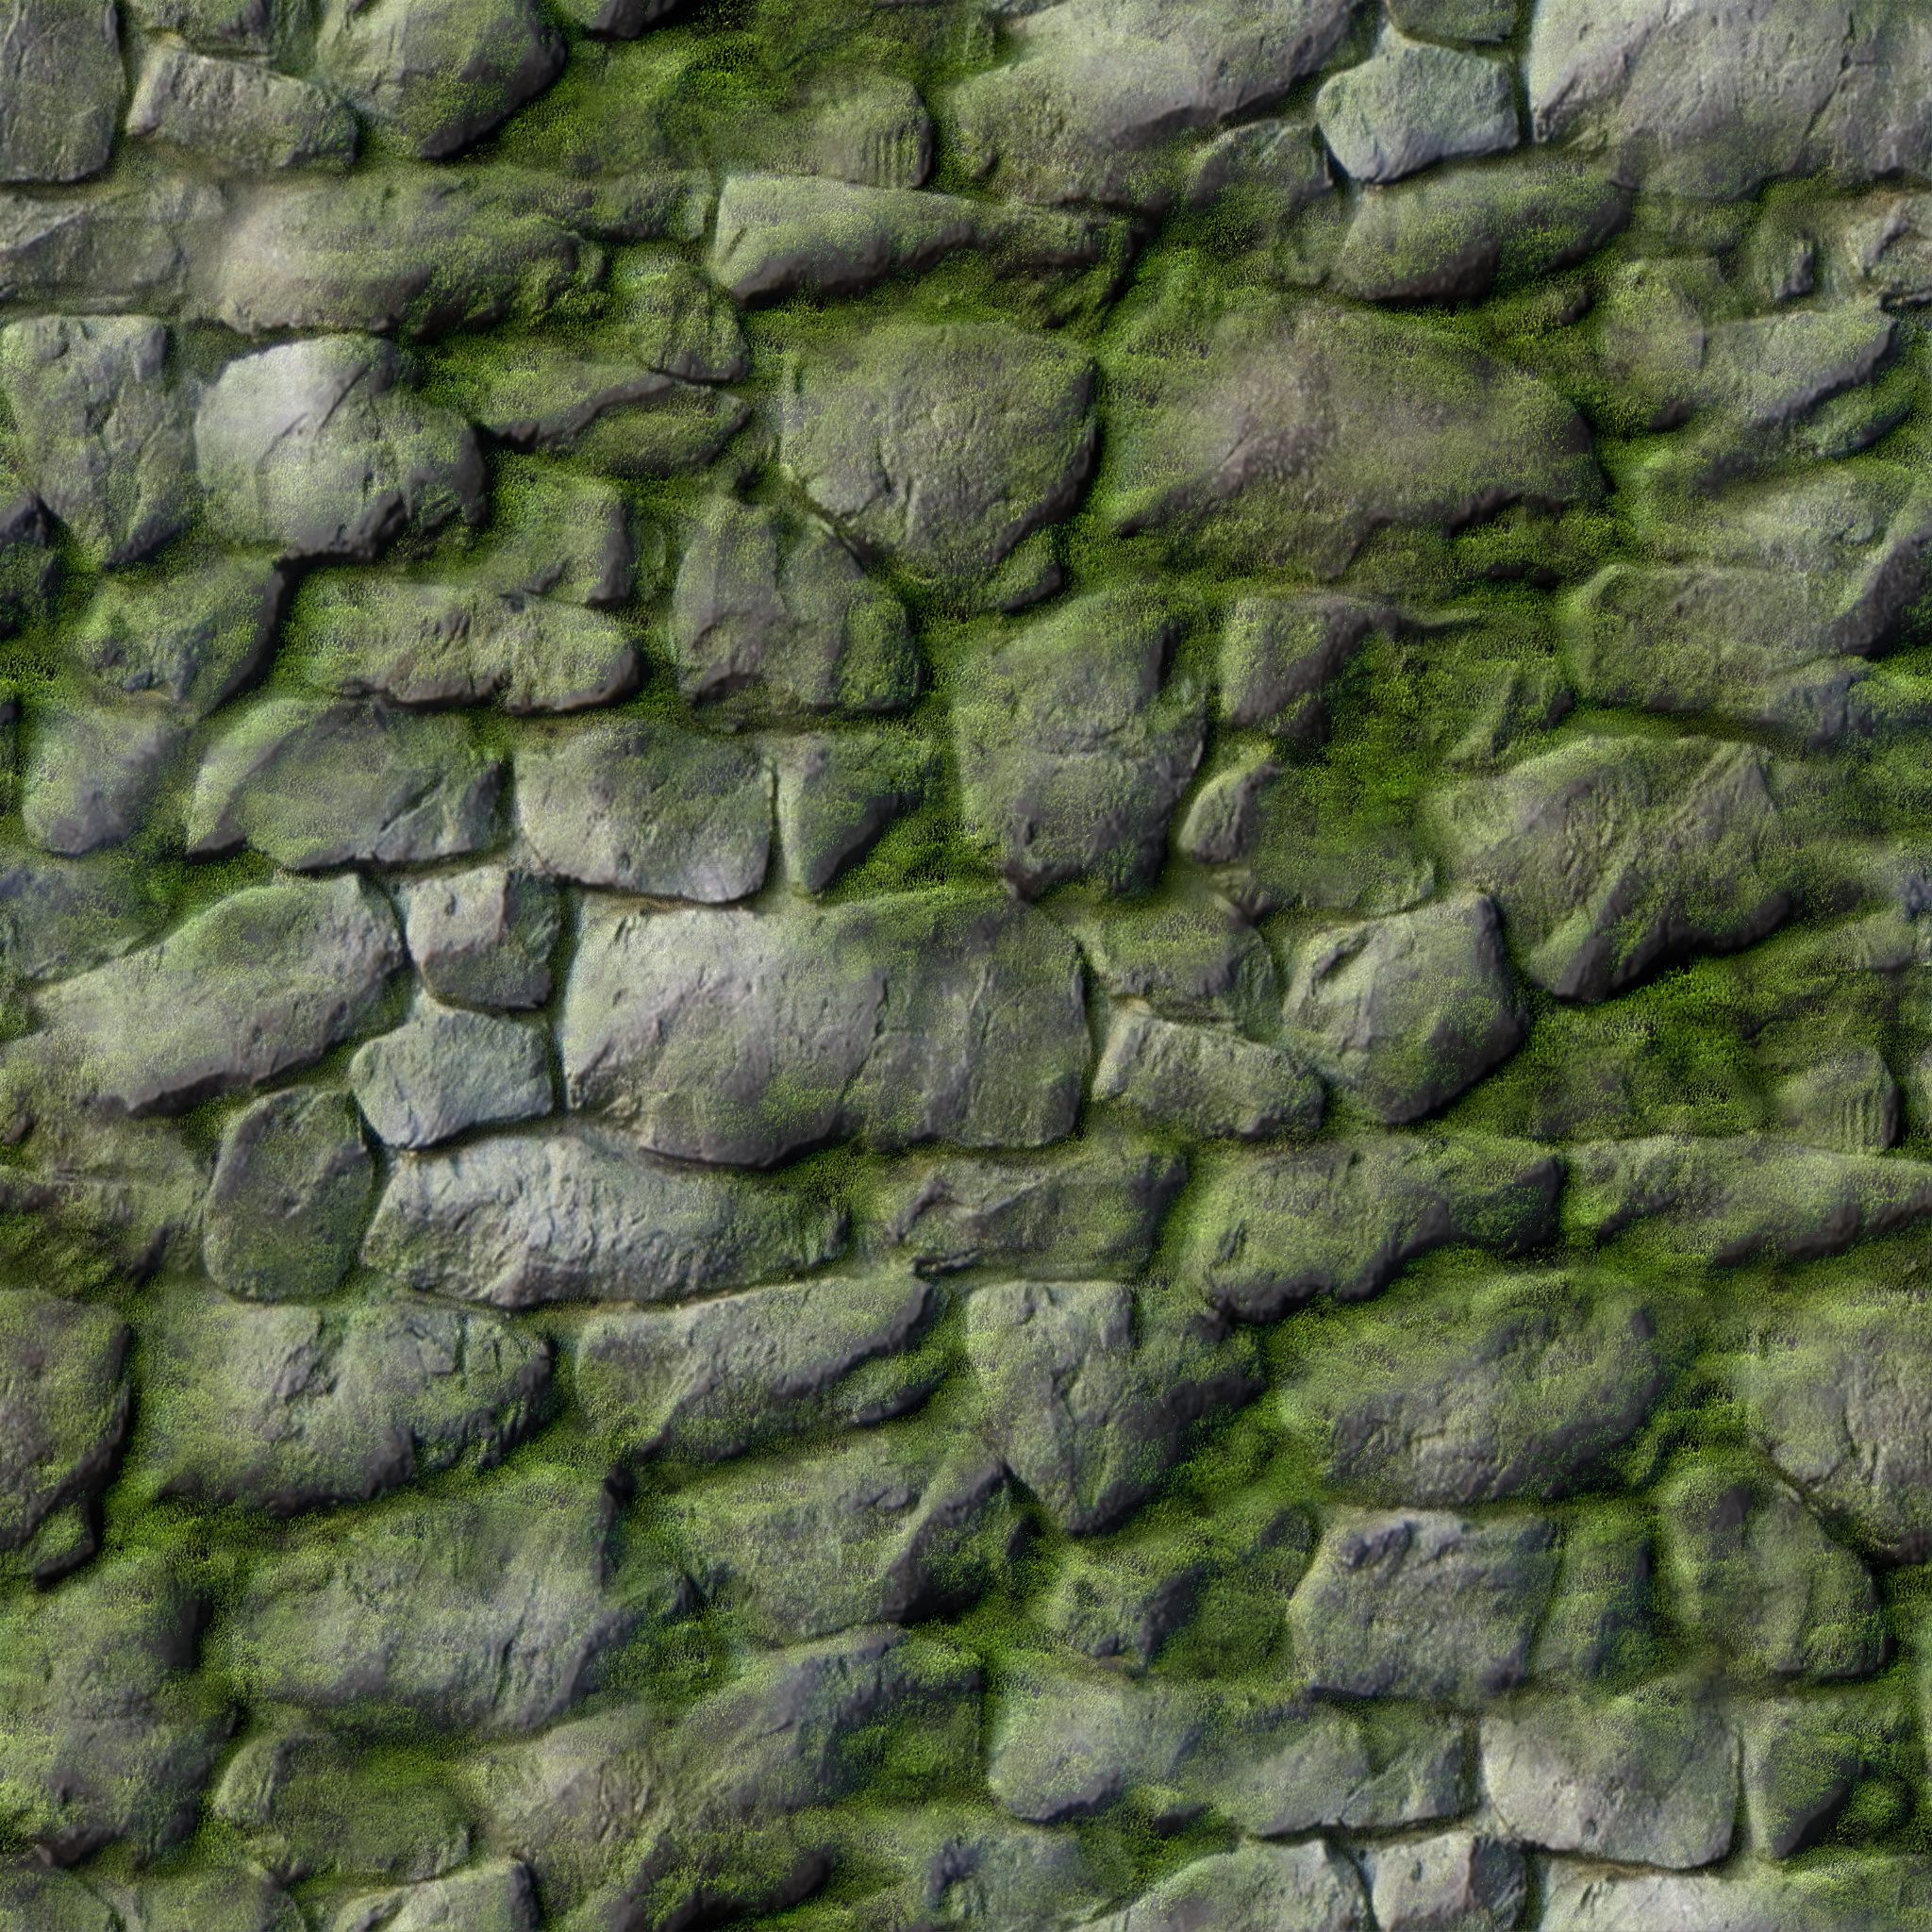 Rock Wall + Snow/Moss Varieties HD Texture Pack - SEAMLESS TEXTURES ...